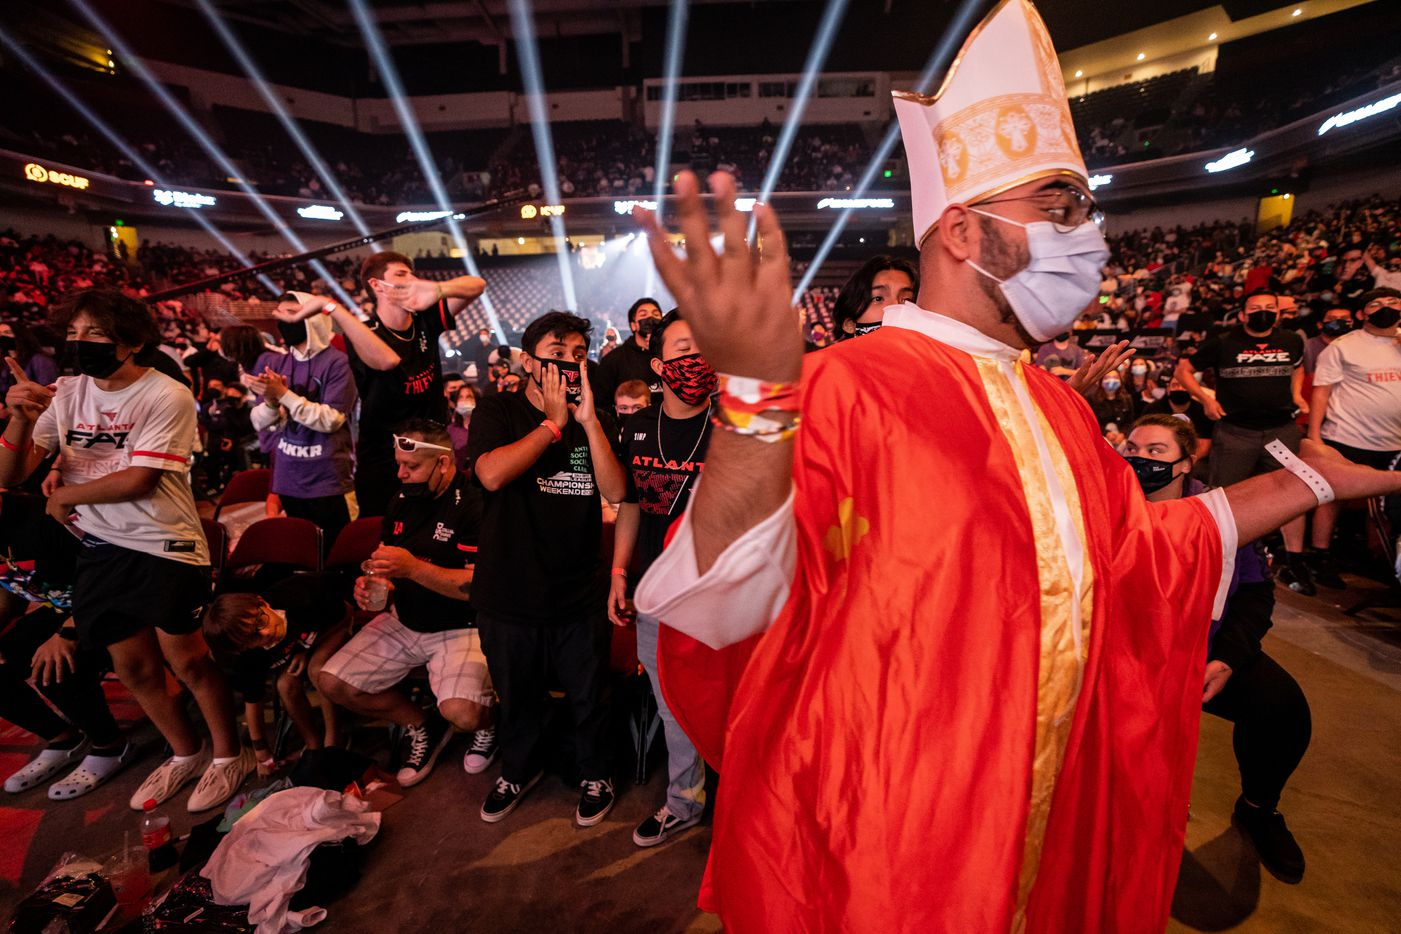 """Gurshaan Arora Dallas, dressed as a pope in honor of Dallas Empires's Indervir """"iLLeY"""" Dhaliwal's nickname, argues with  Atlanta FaZe fans as the two teams compete during the winners final of the Call of Duty league playoffs at the Galen Center on Saturday, August 21, 2021 in Los Angeles, California. The Empire lost to FaZe 0 - 3 in their first match of the day but are still in contention to play in the finals through the elimination finals. (Justin L. Stewart/Special Contributor)"""